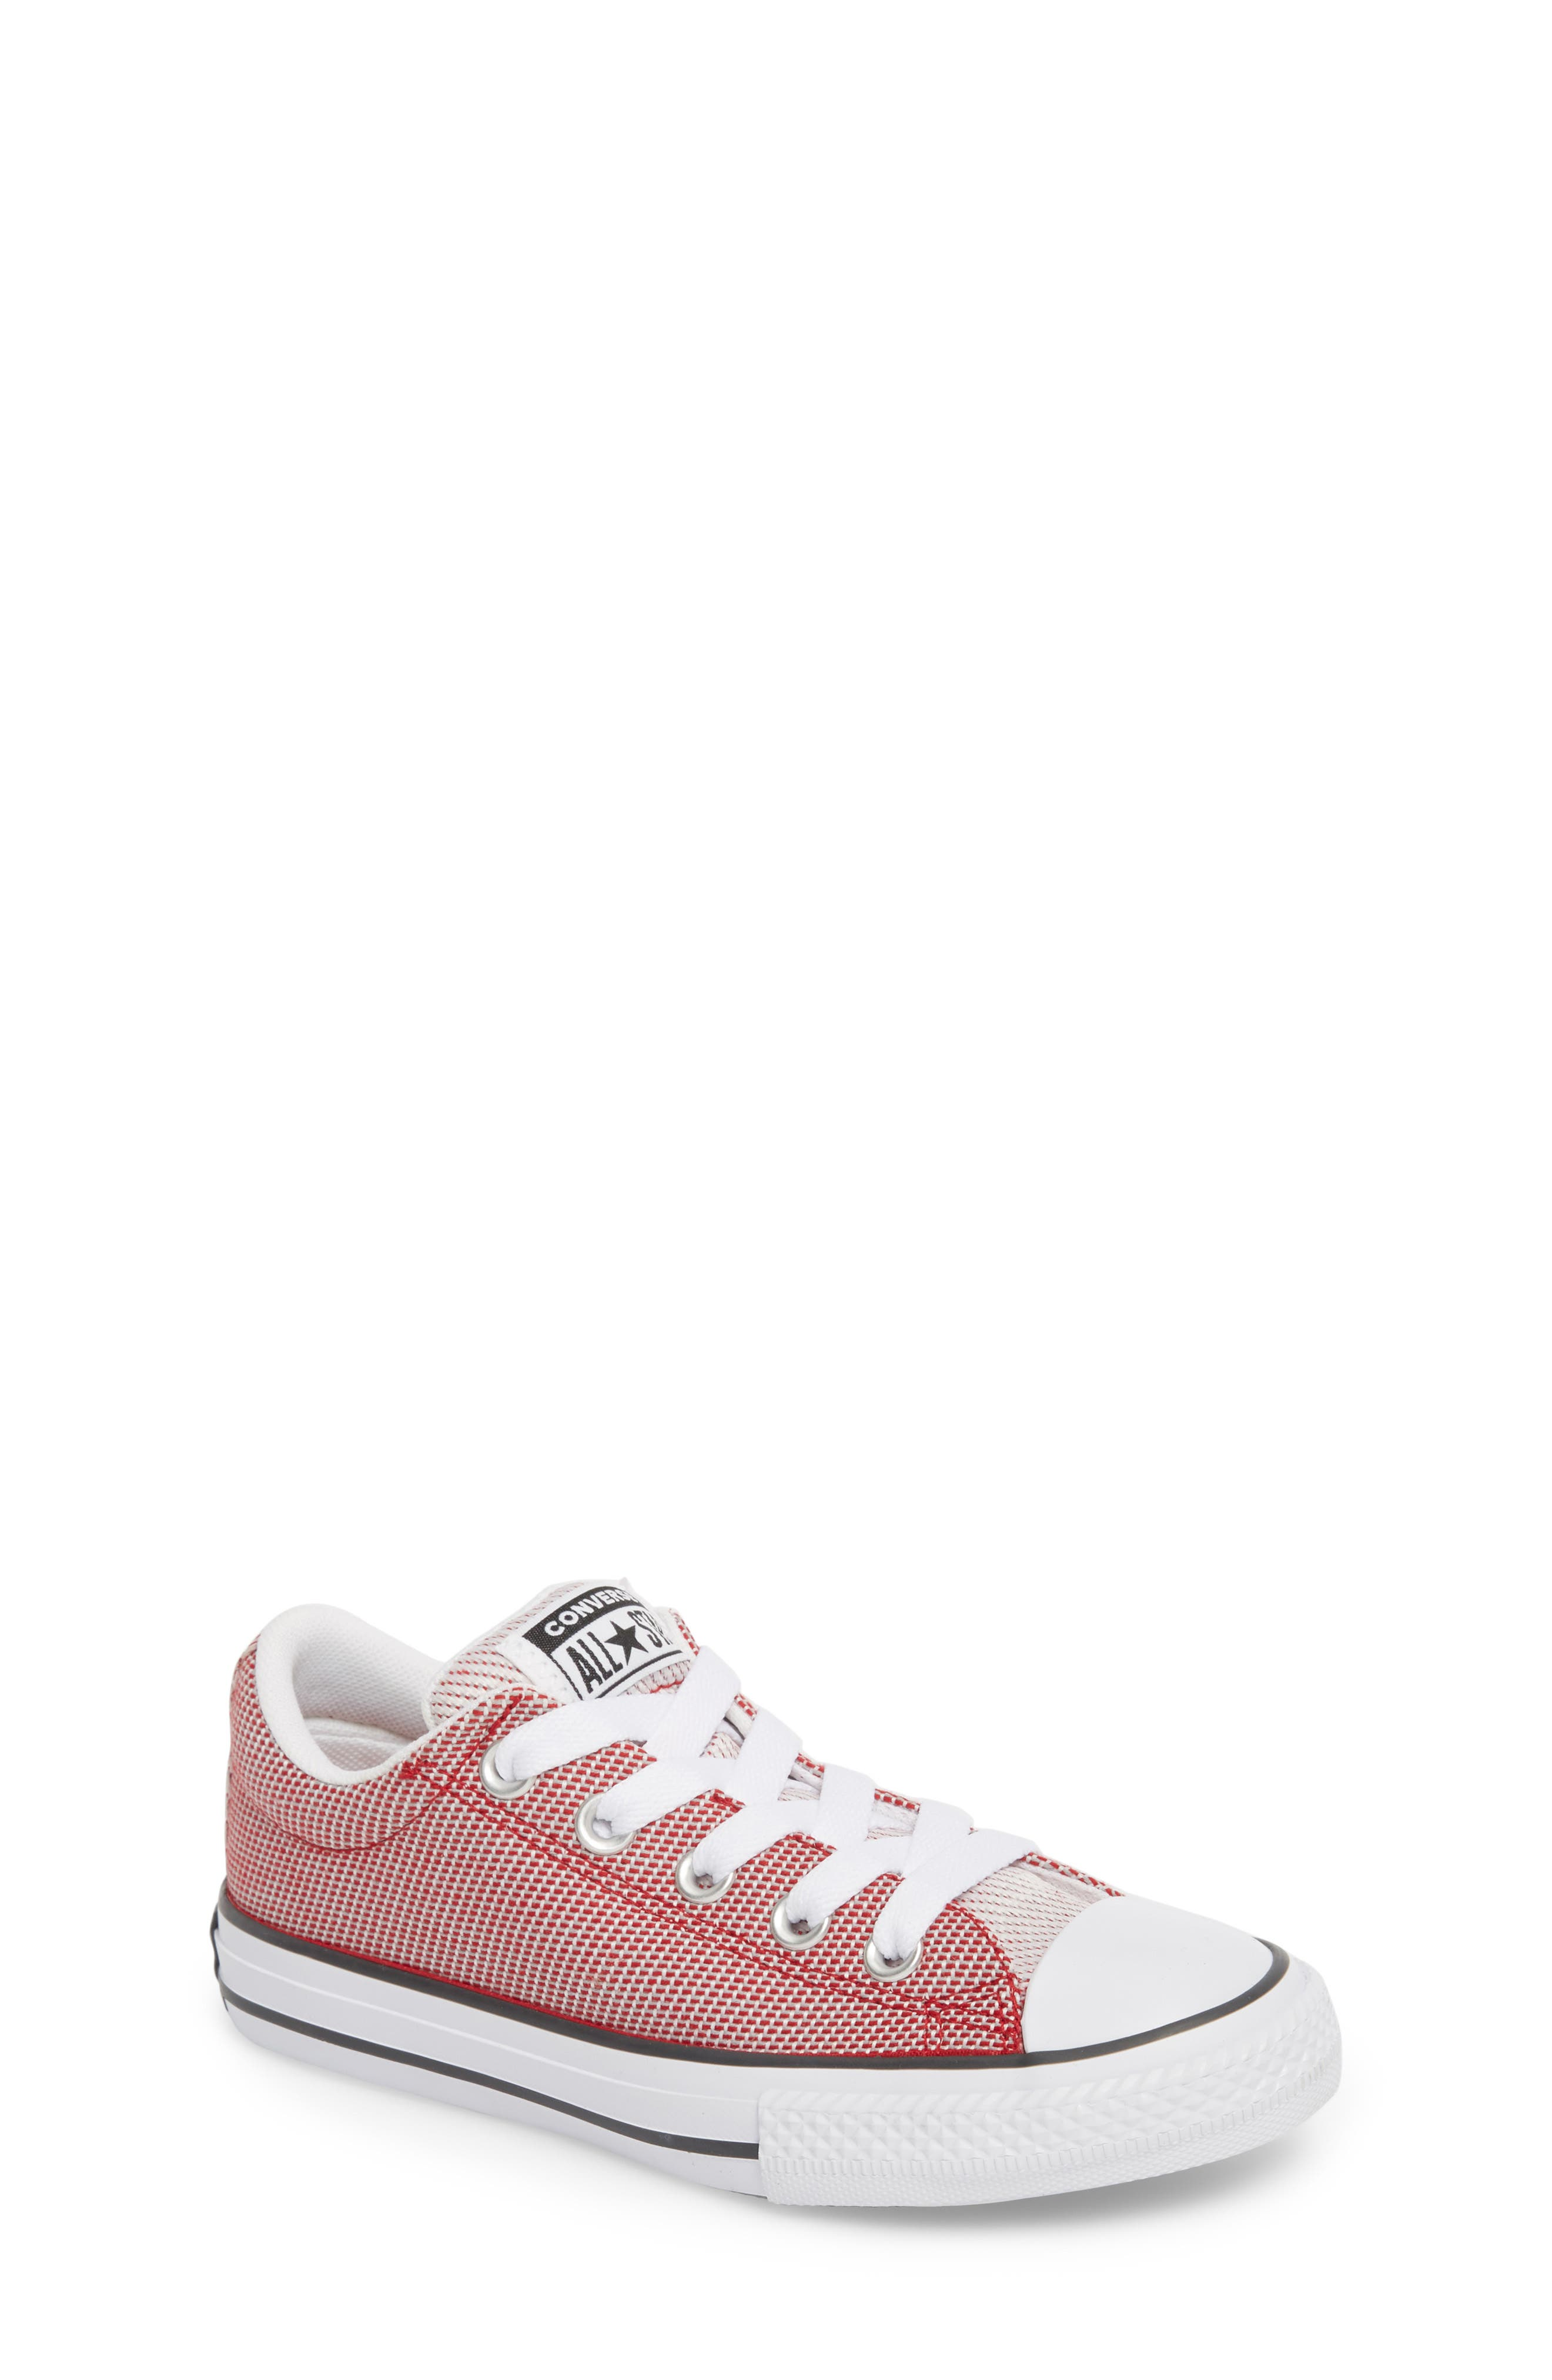 Chuck Taylor<sup>®</sup> All Star<sup>®</sup> Woven Street Sneaker,                         Main,                         color, Gym Red